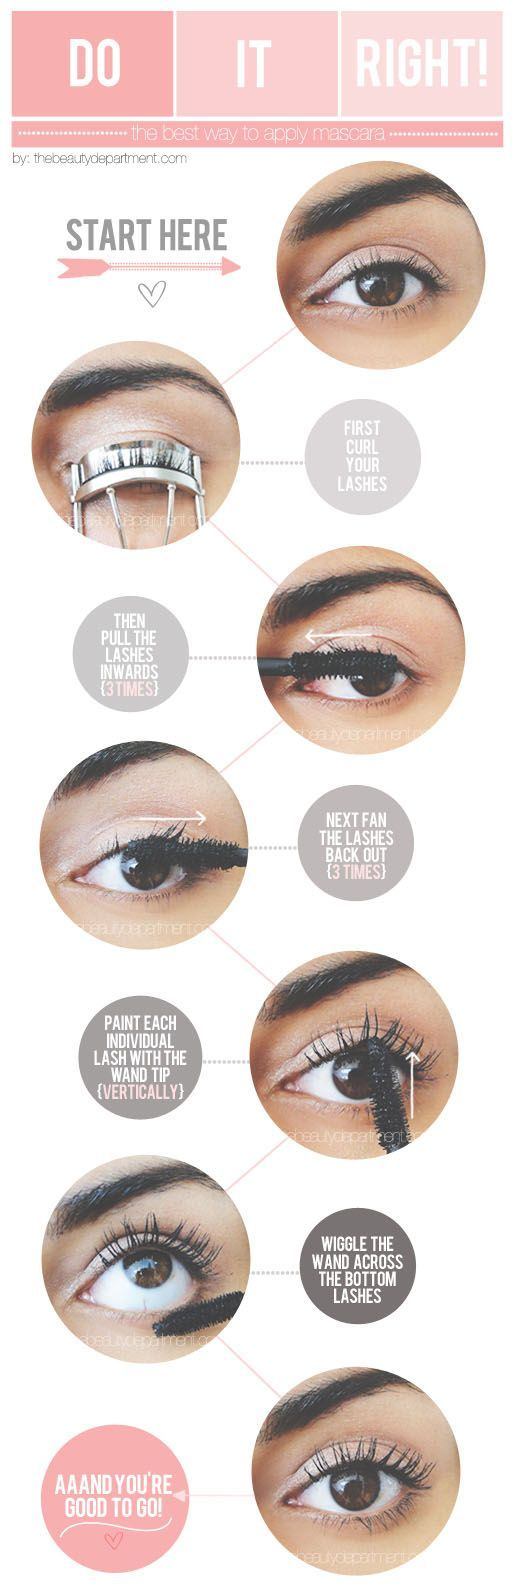 Applying mascara is one of the most basic make-up tricks in the book but I always like to try out new ways to apply it and see what creates the best, most effective look.